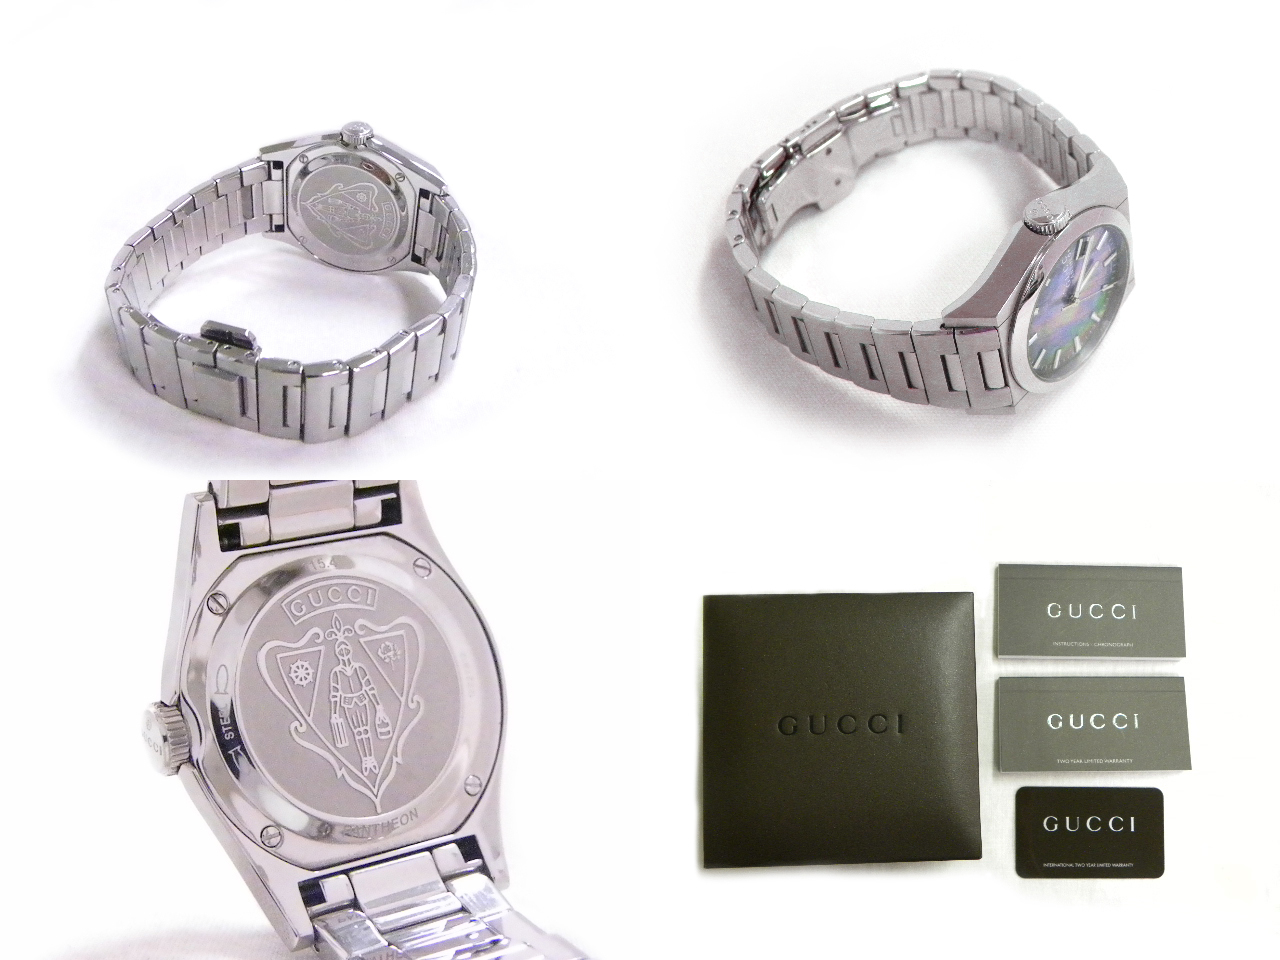 115.4 GUCCI gucci Pantheon SS black shell clockface quartz